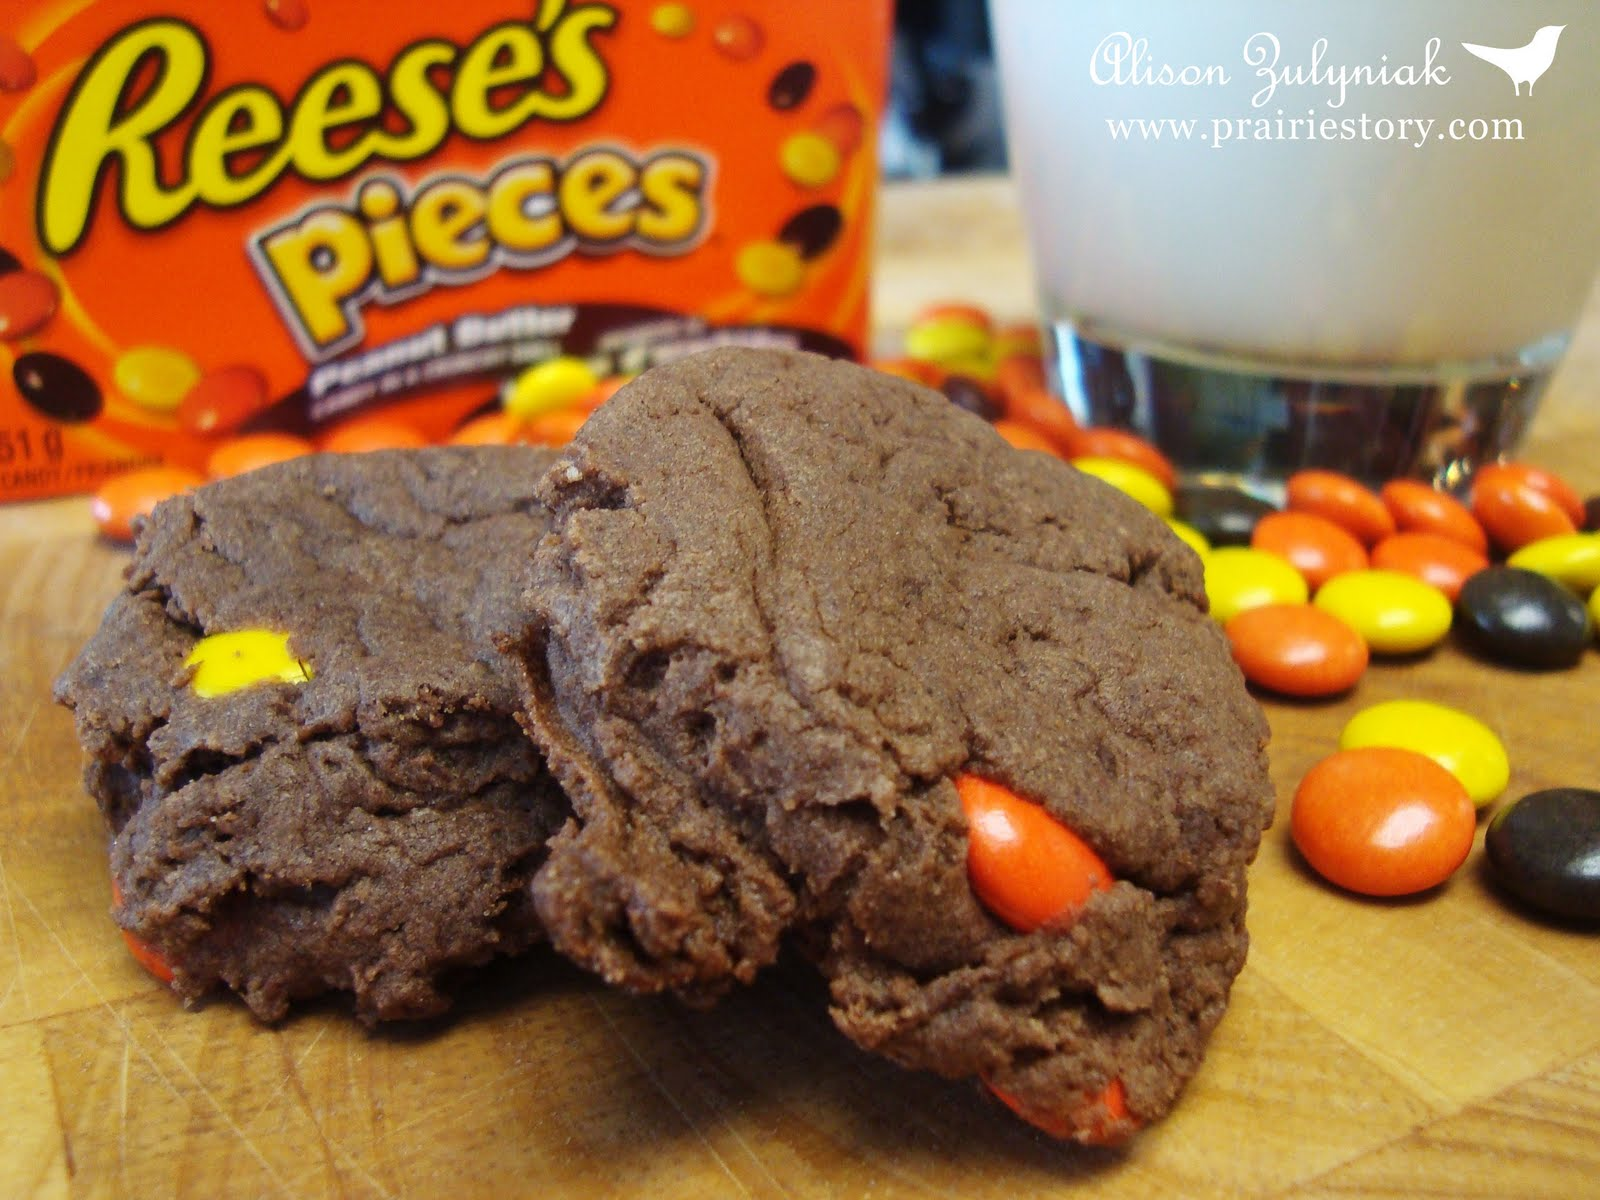 Prairie Story: Chocolate Peanut Butter Reese's Pieces Cookies